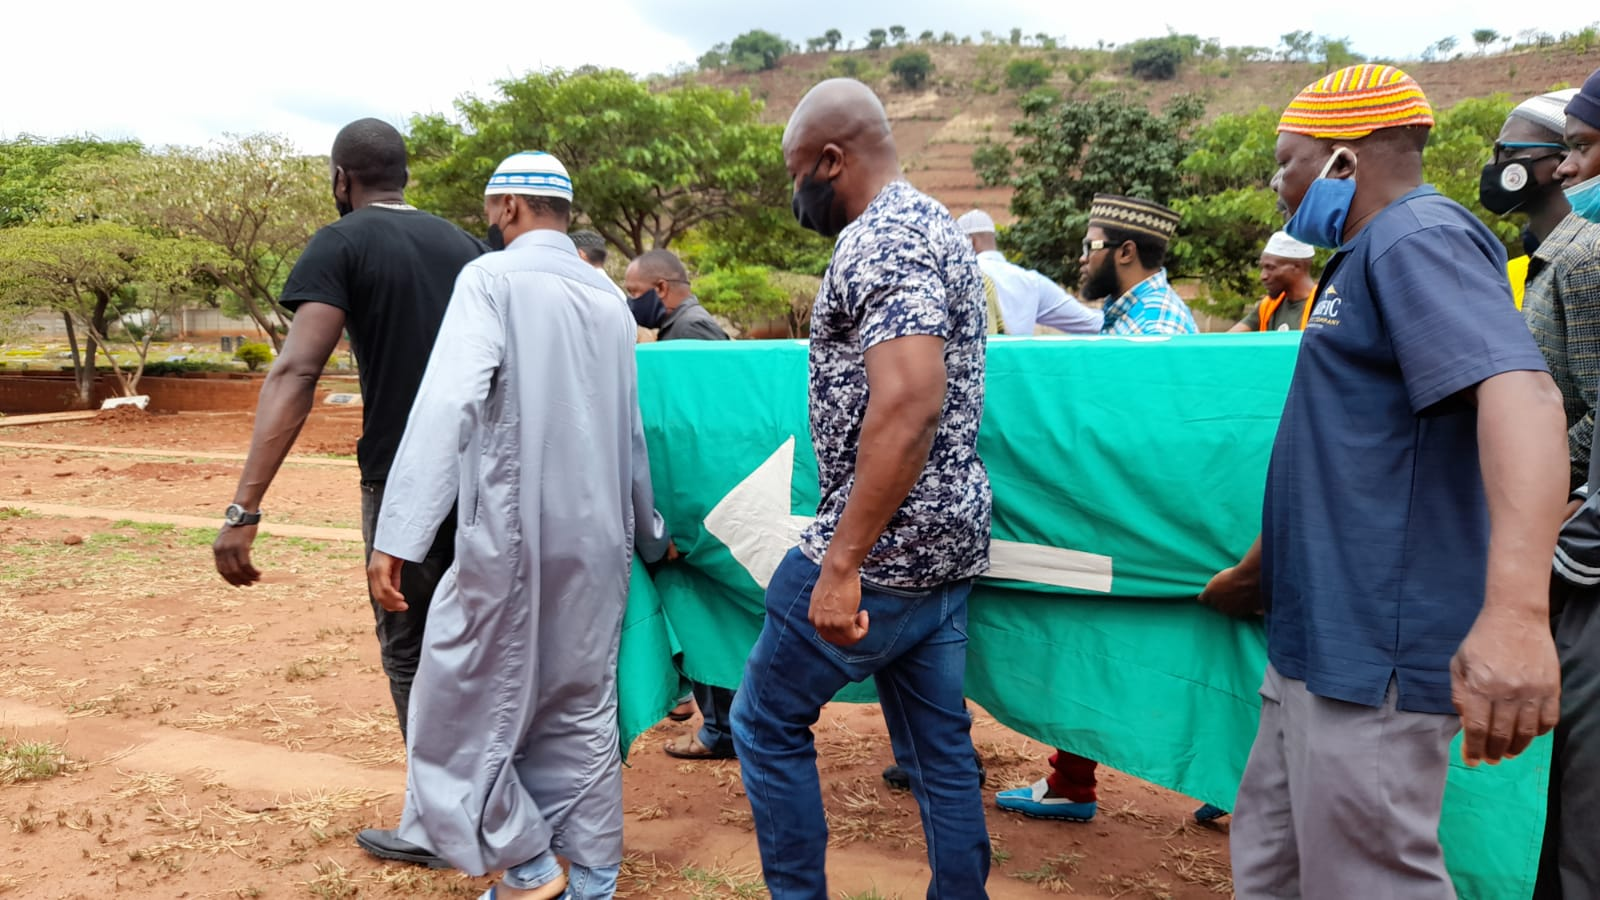 Moana's family buries differences to give socialite emotional send-off